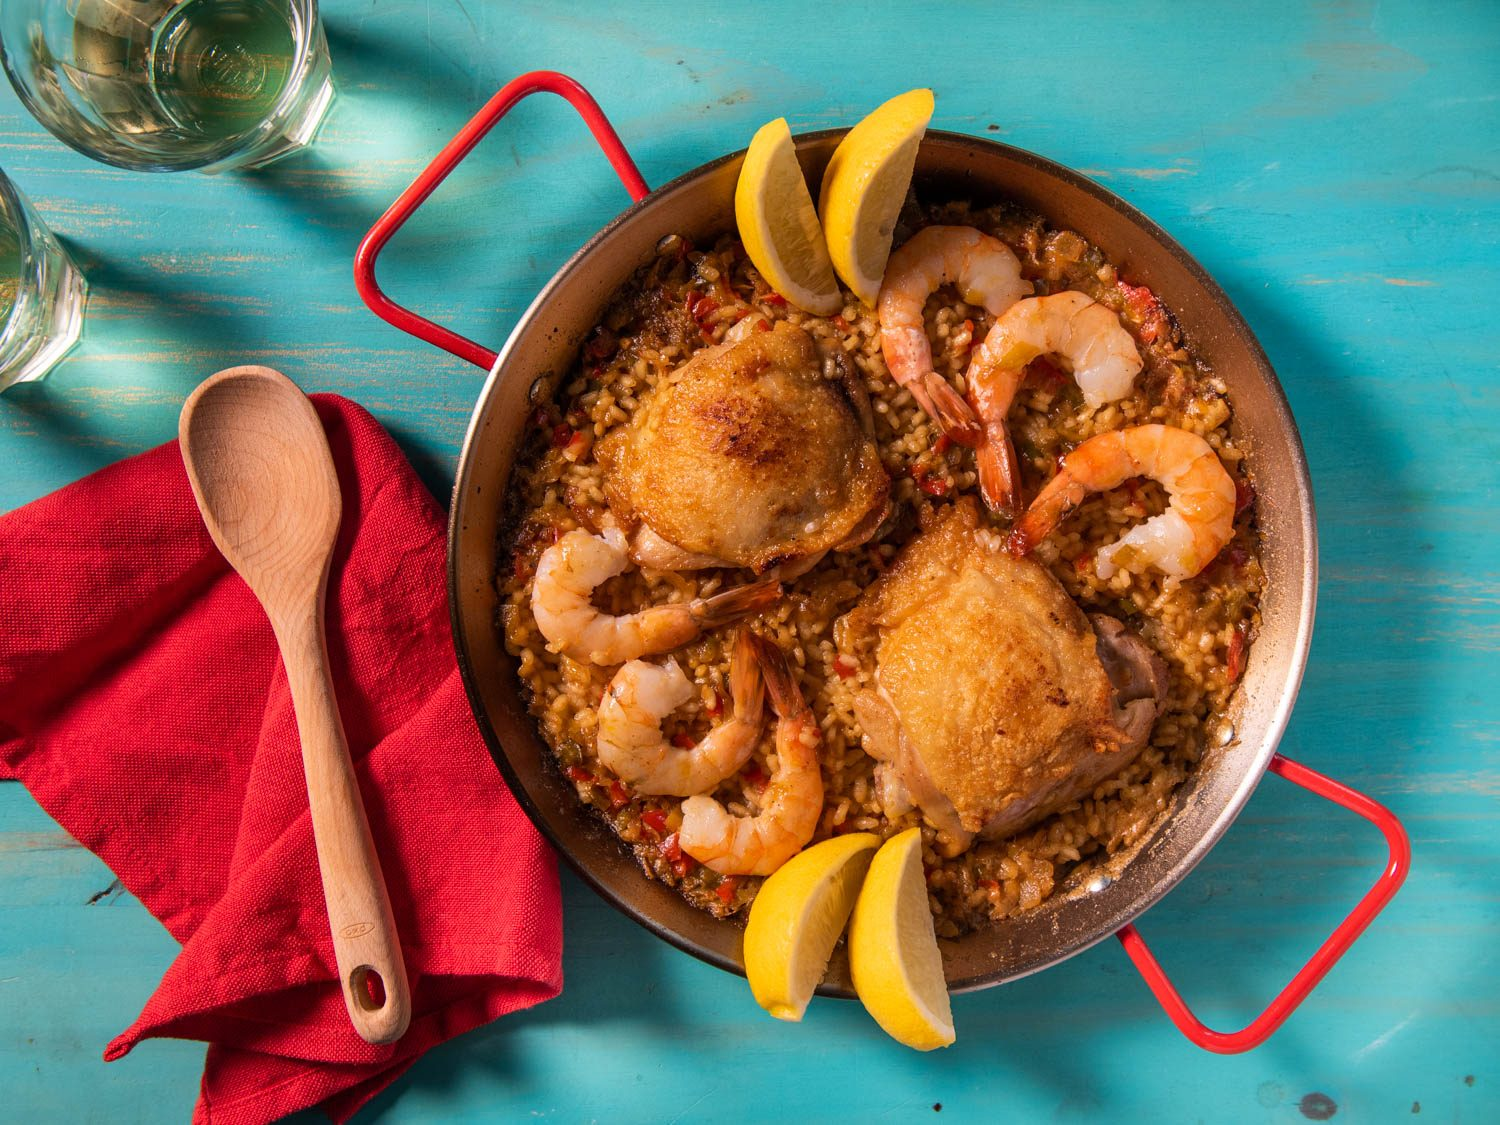 Stovetop Paella Mixta for Two With Chicken and Shrimp